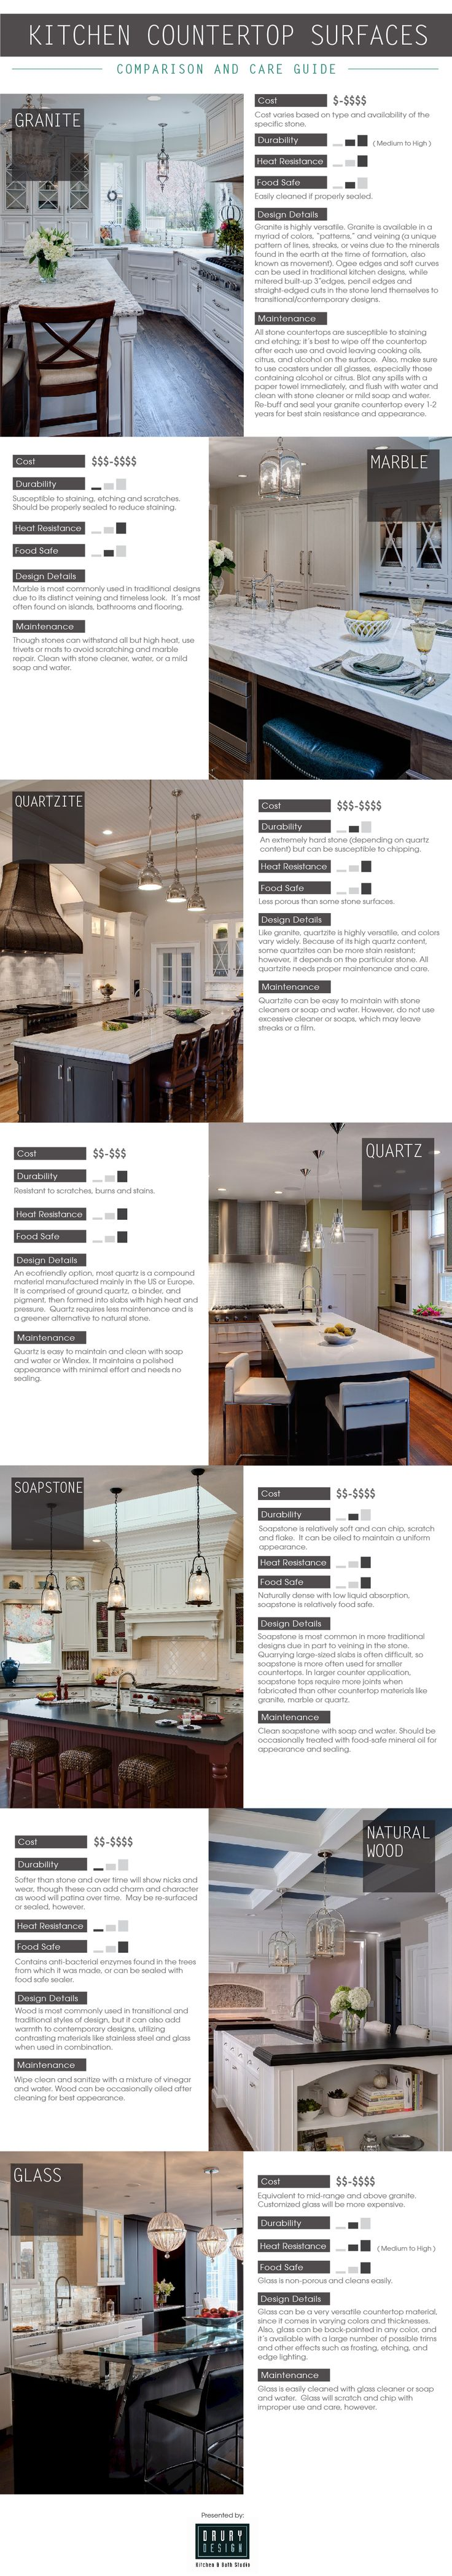 Care Of Granite Kitchen Countertops 17 Best Ideas About Cheap Granite Countertops On Pinterest